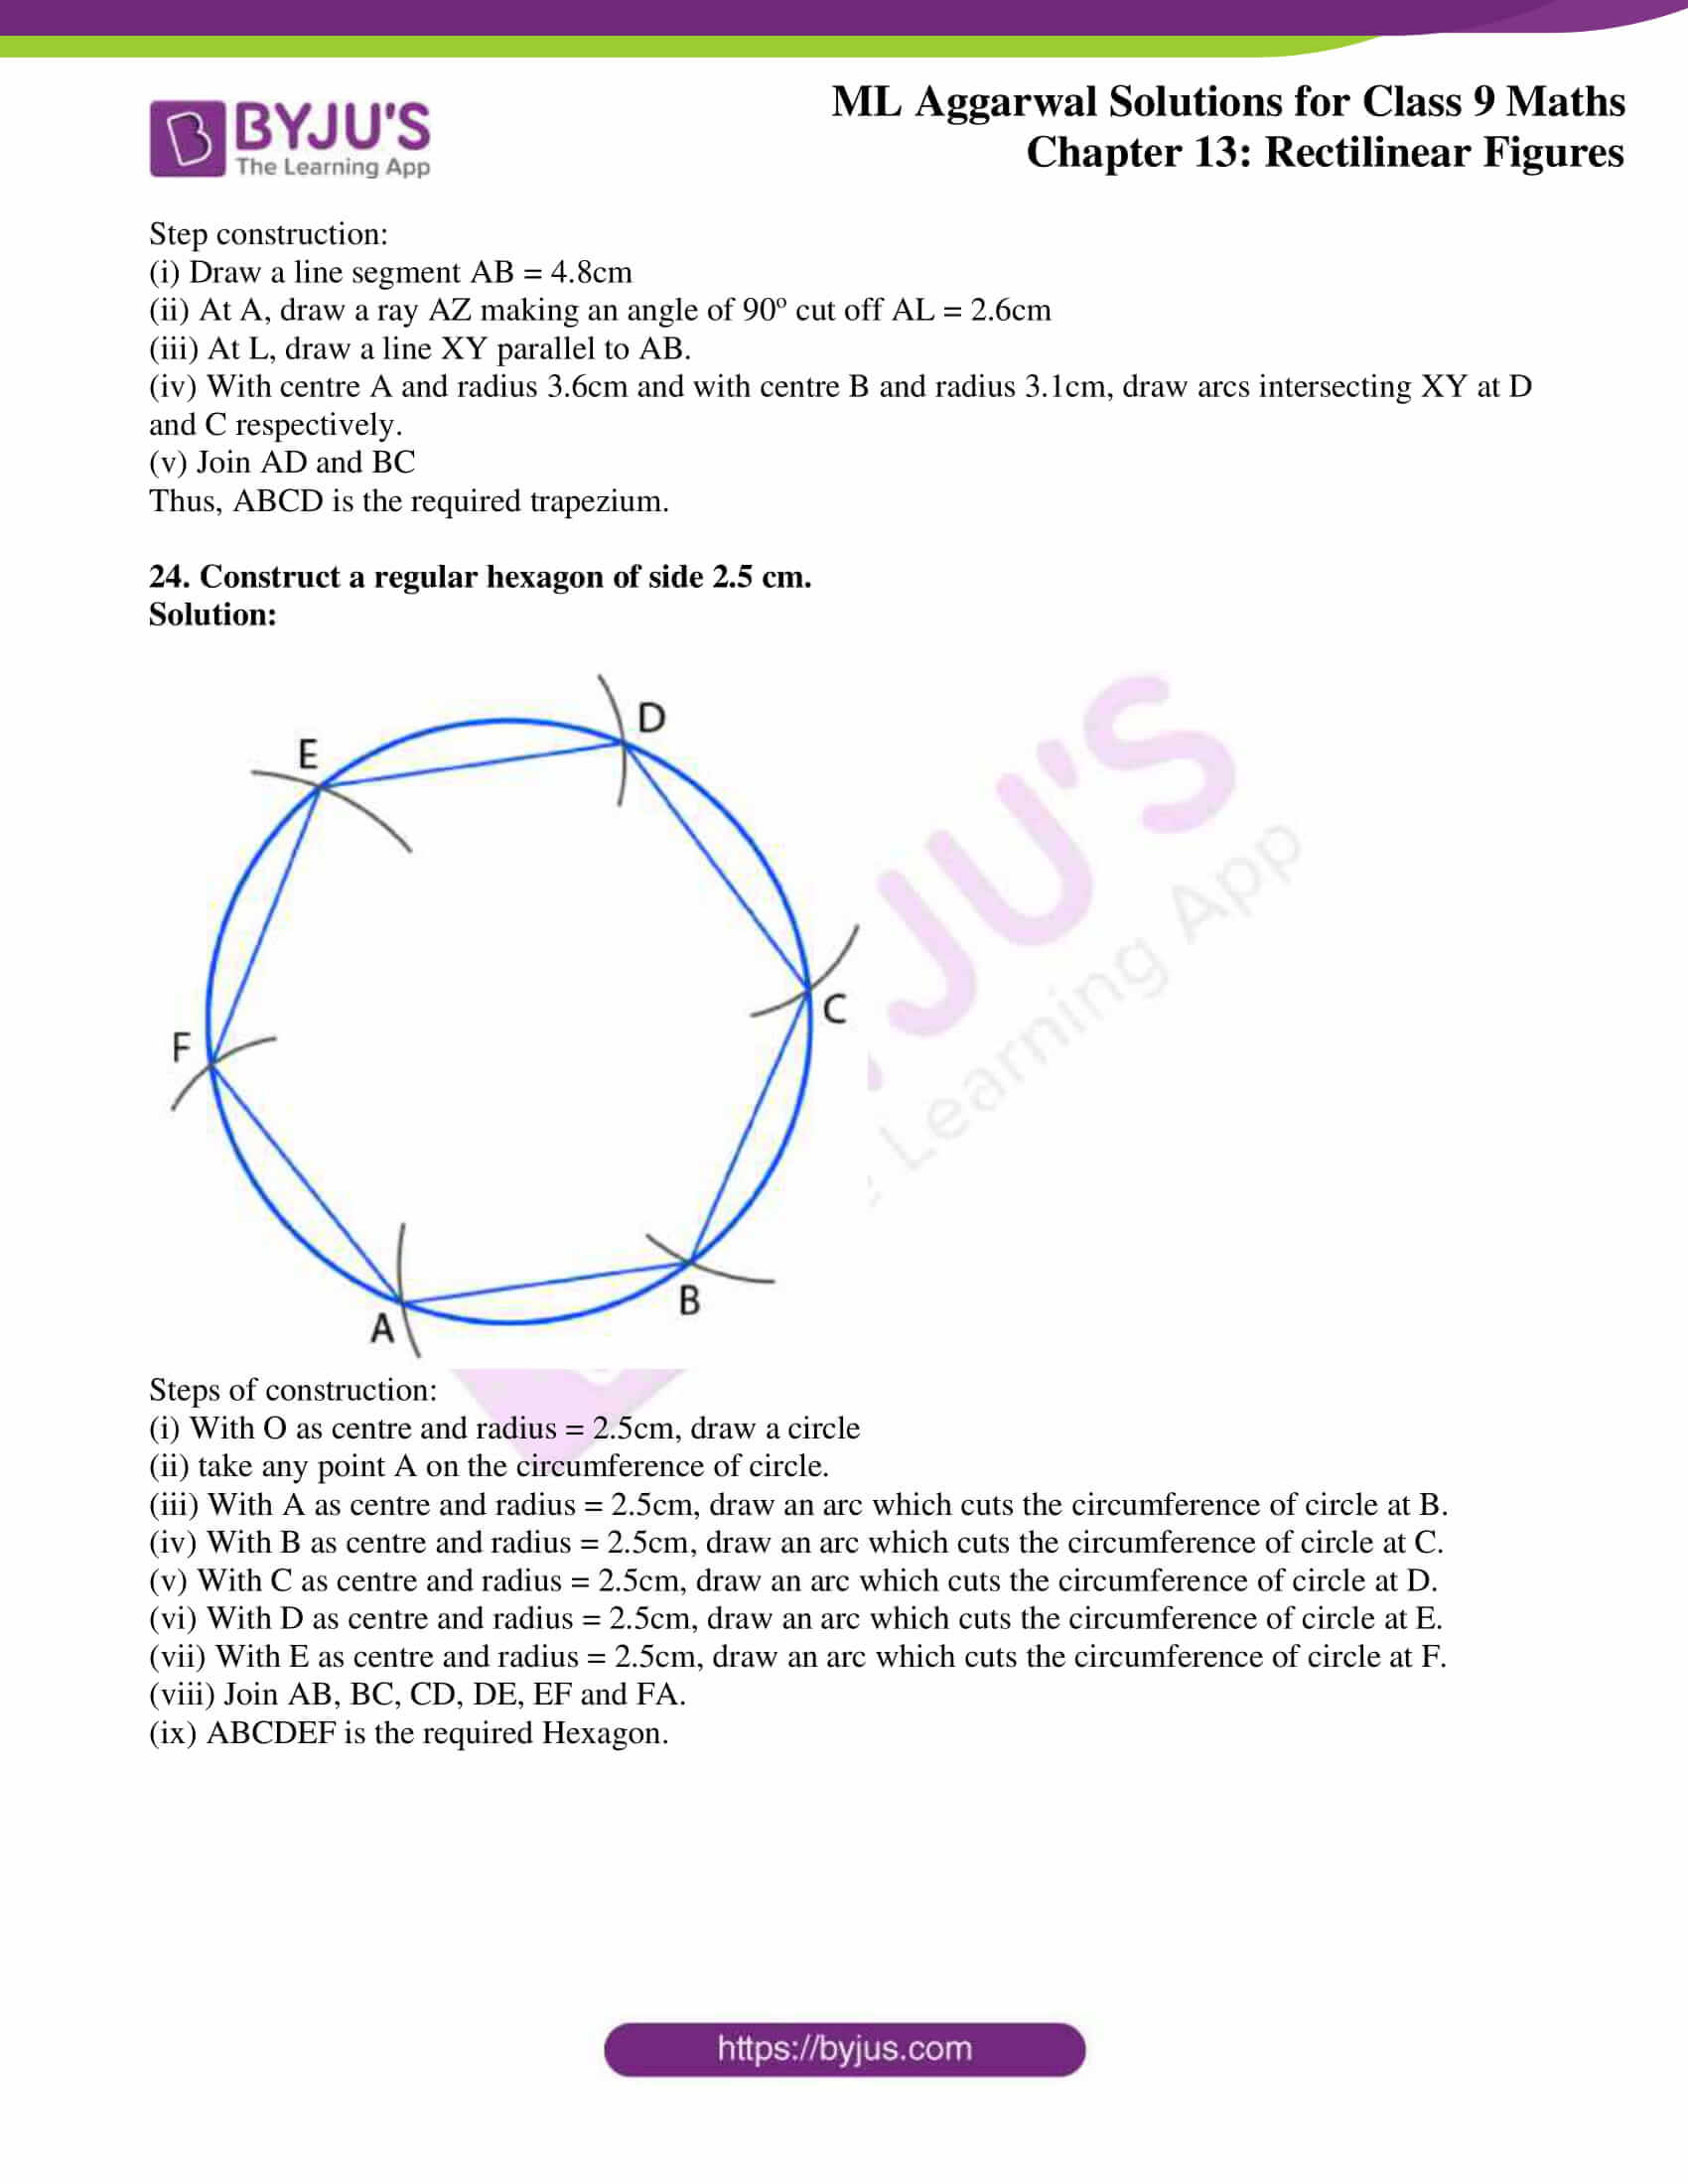 ml aggarwal solutions for class 9 maths chapter 13 38